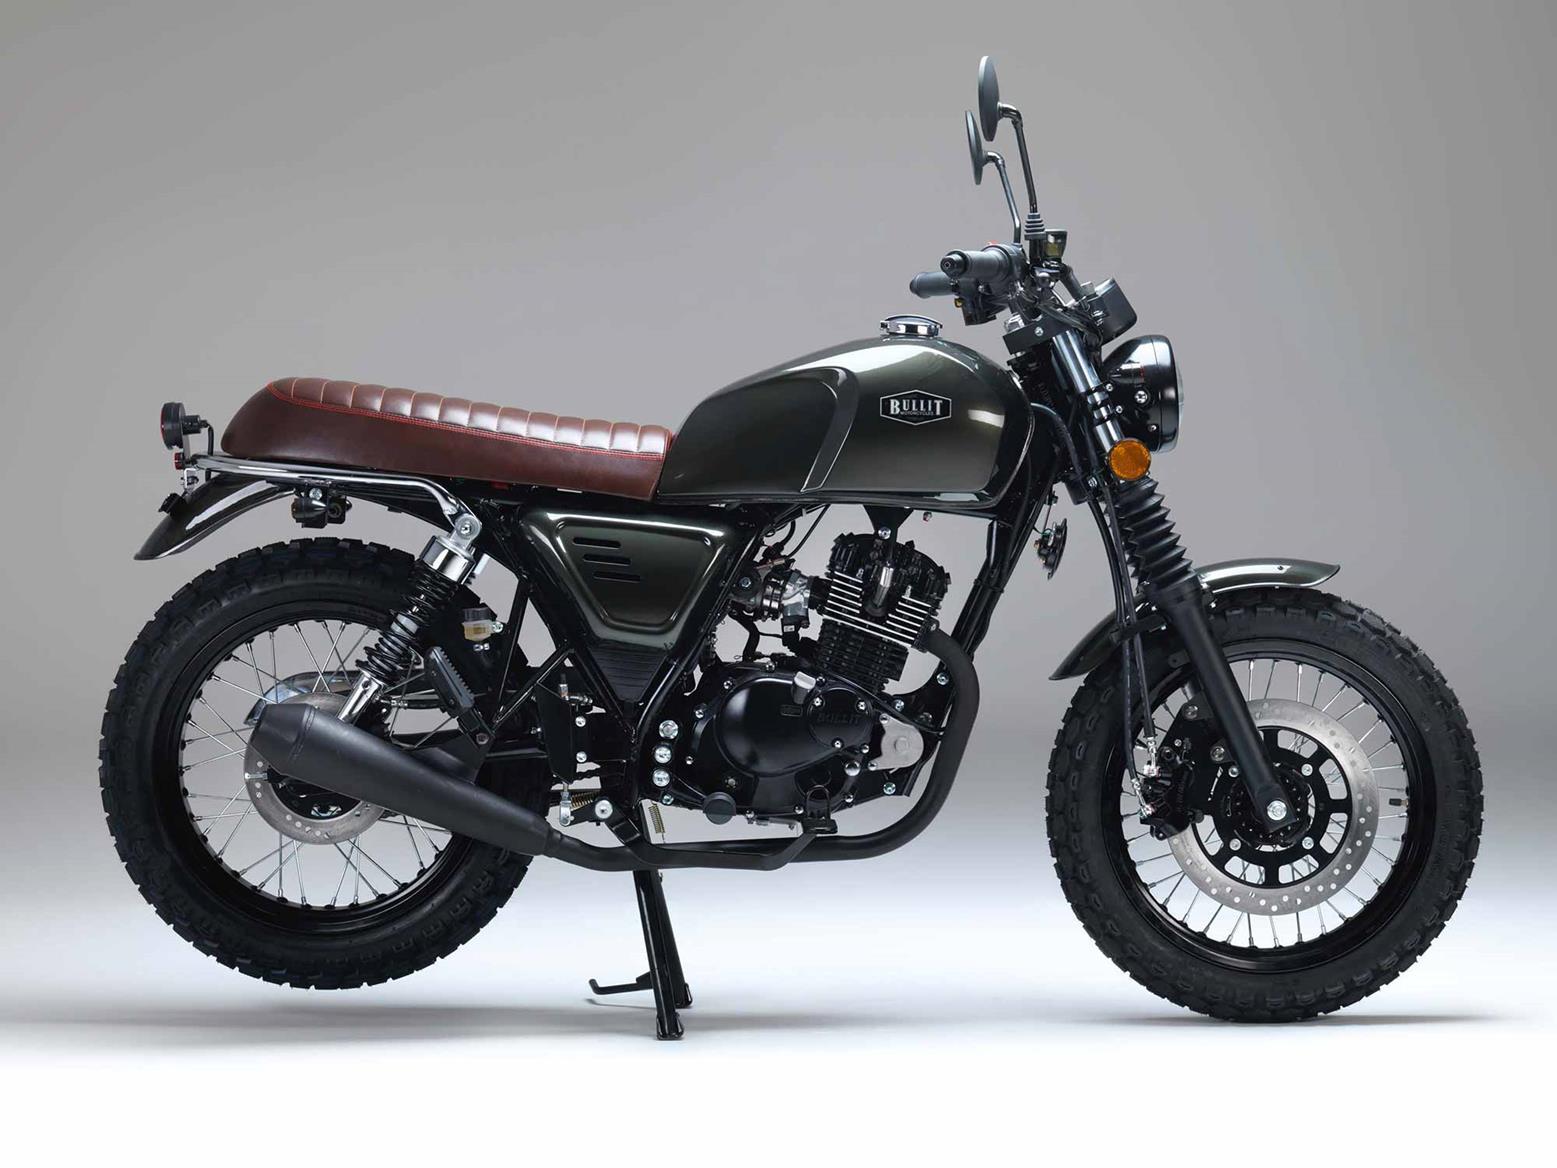 Bullit Bluroc 125 side-on view